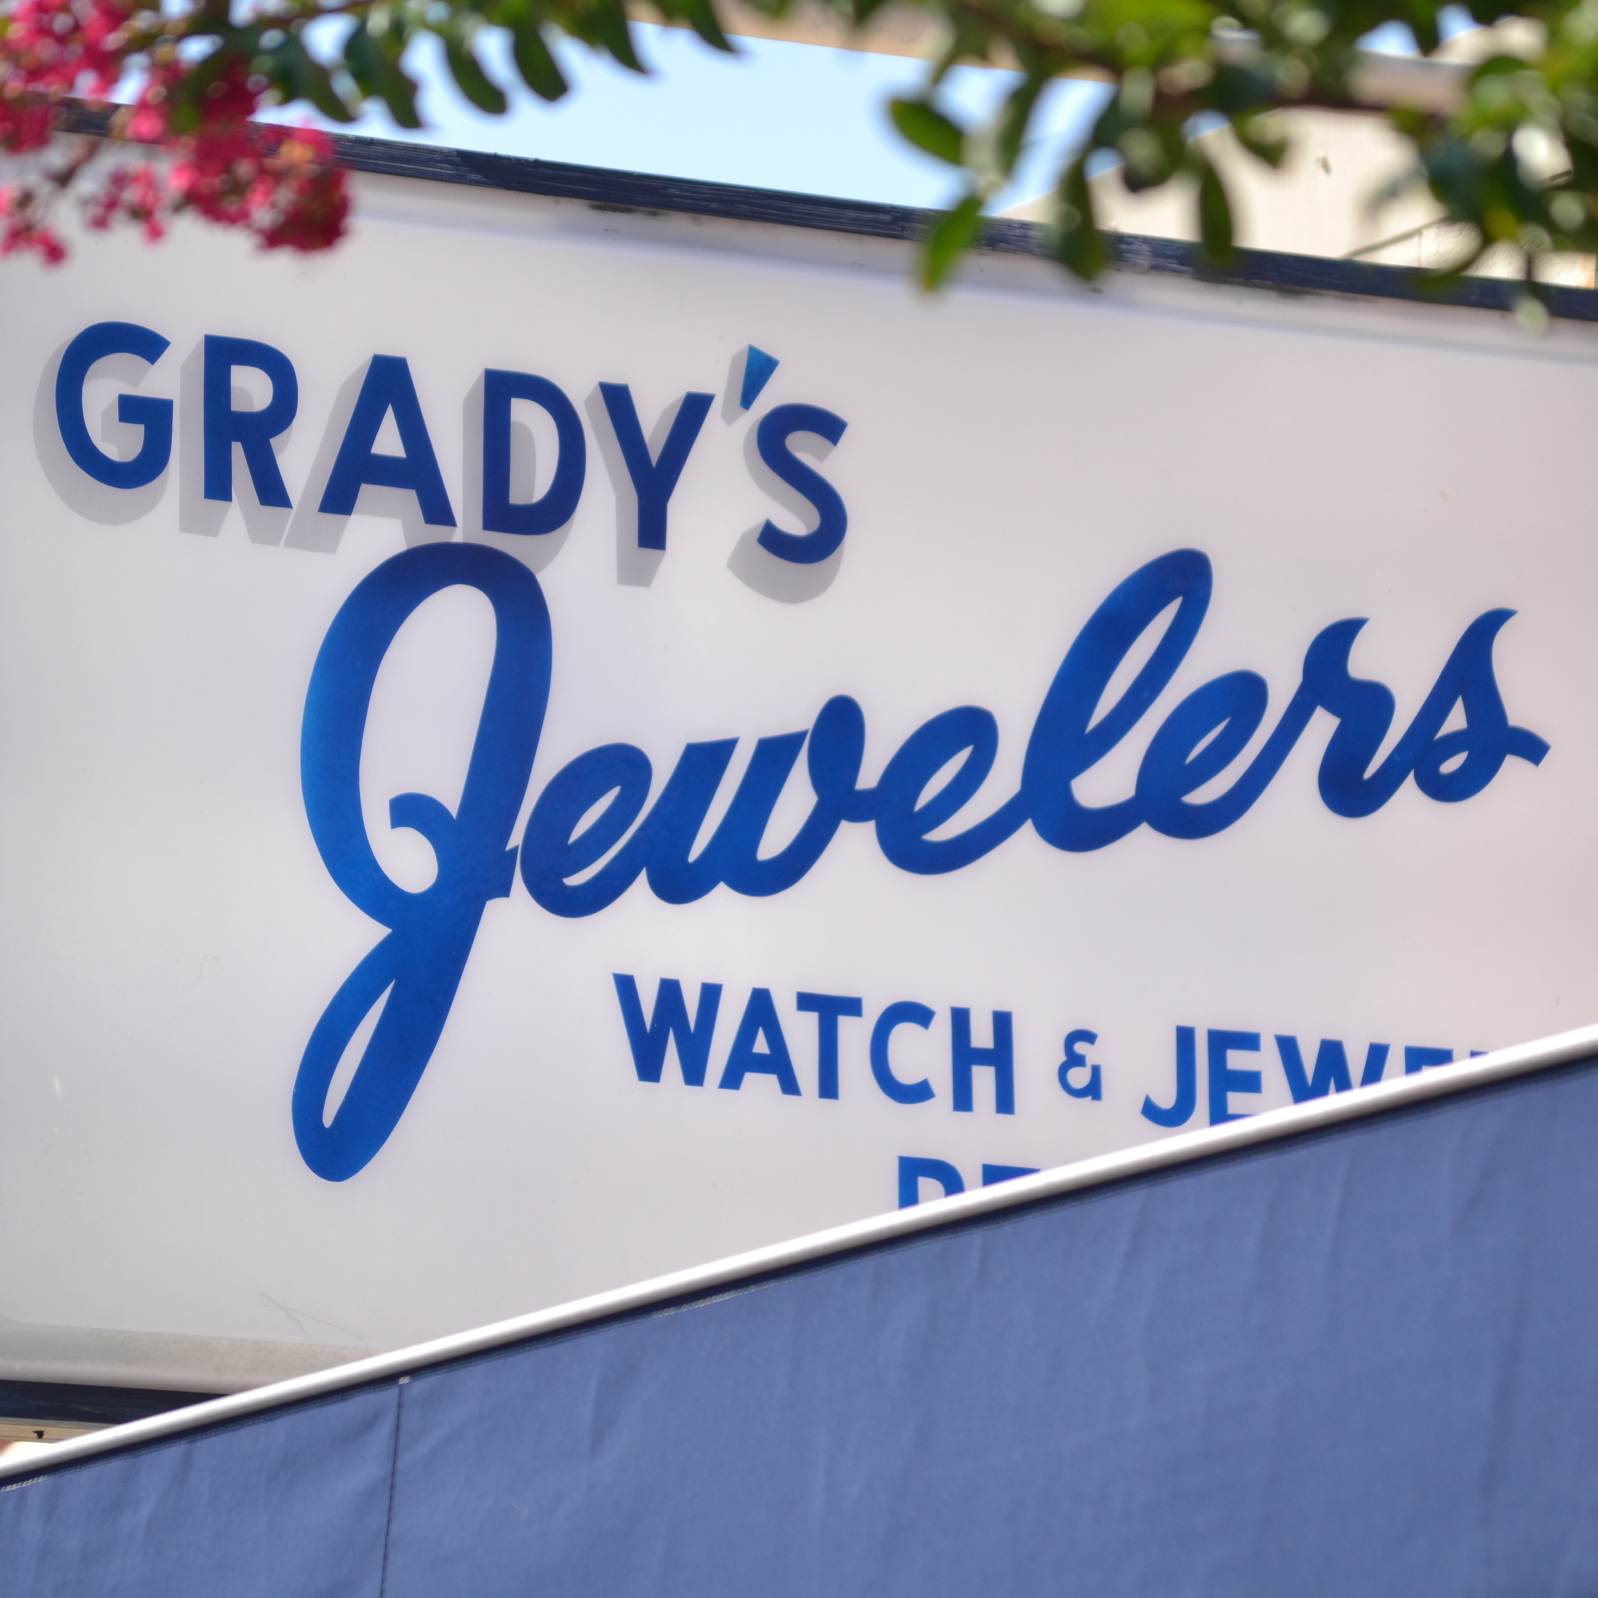 Grady's Jewelers in South Carolina